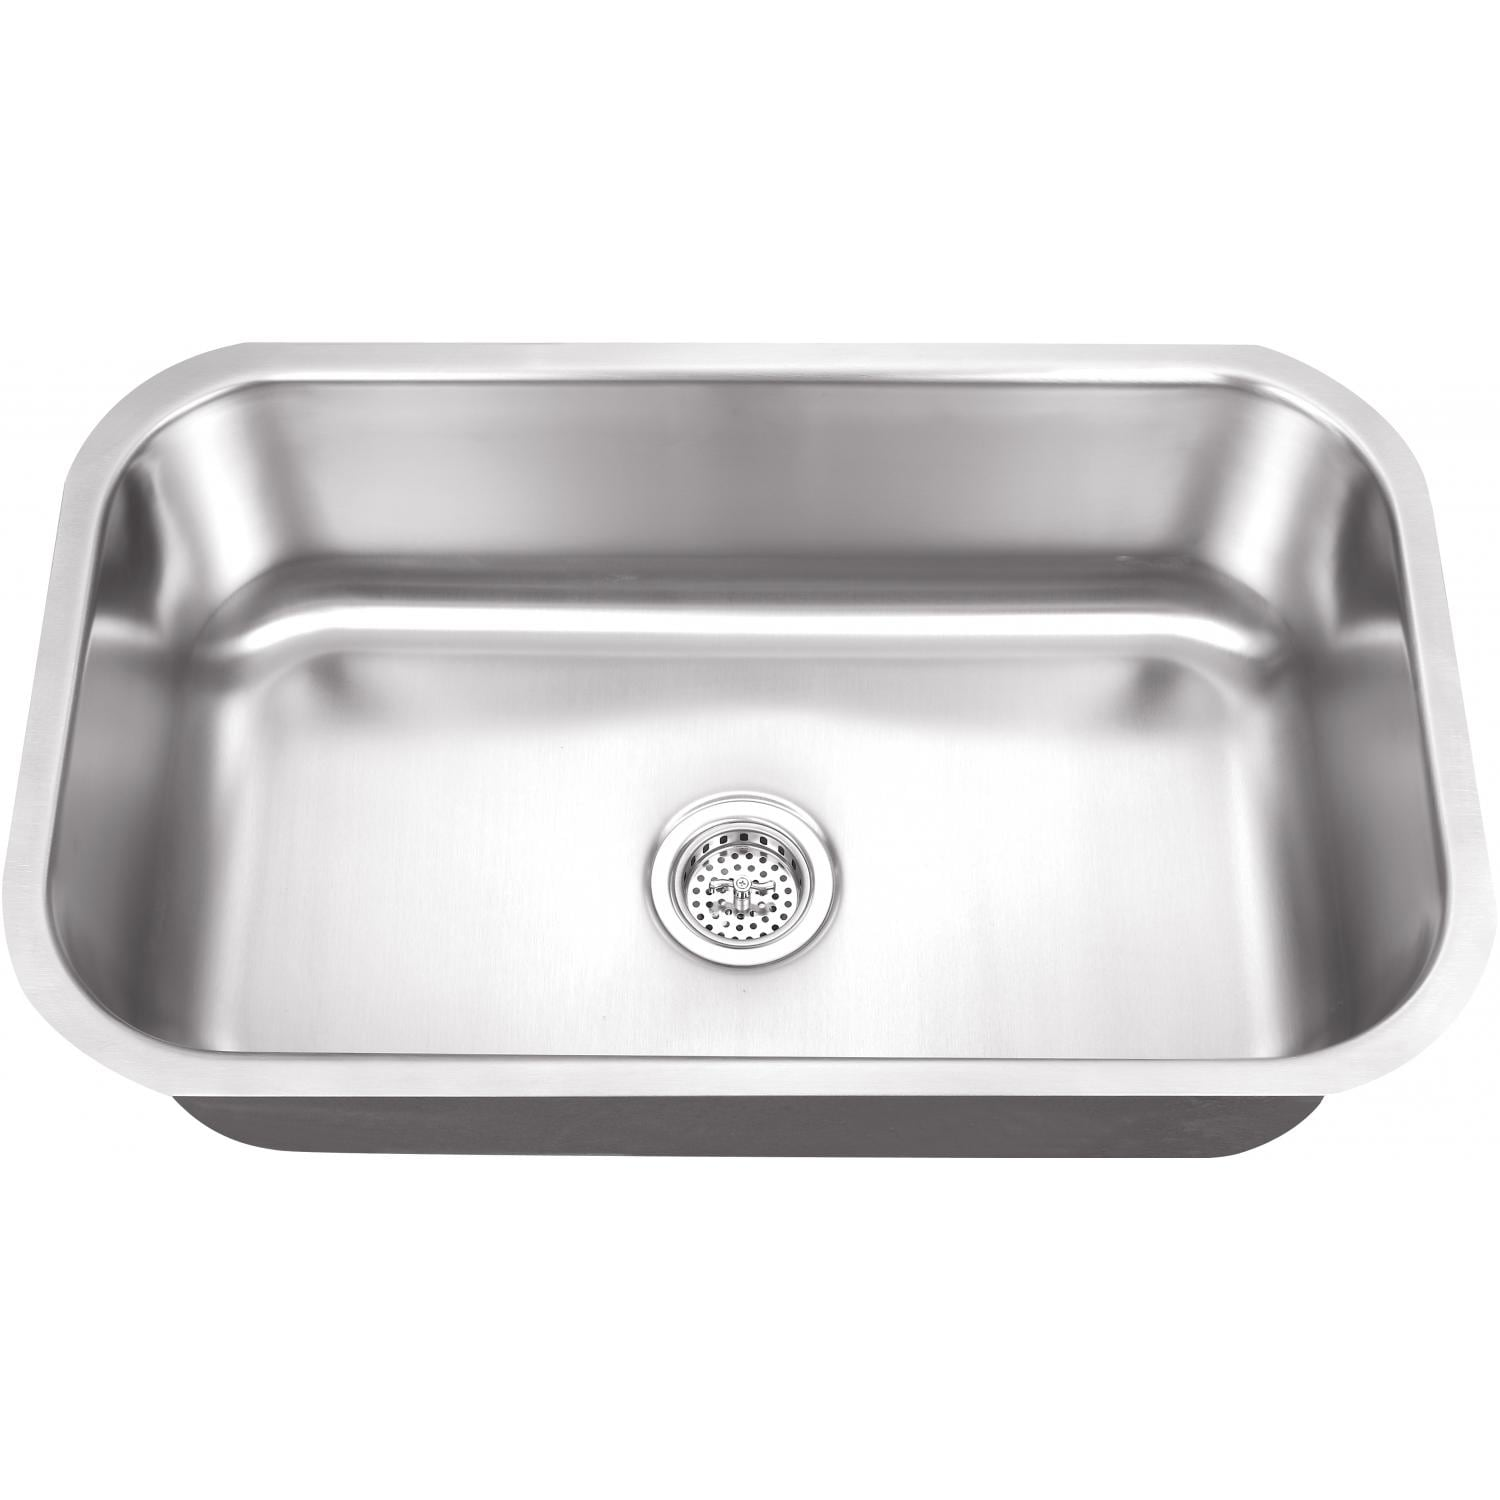 Nice Platinum Sinks 30 X 18 16 Gauge Single Bowl Stainless Steel Undermount Sink